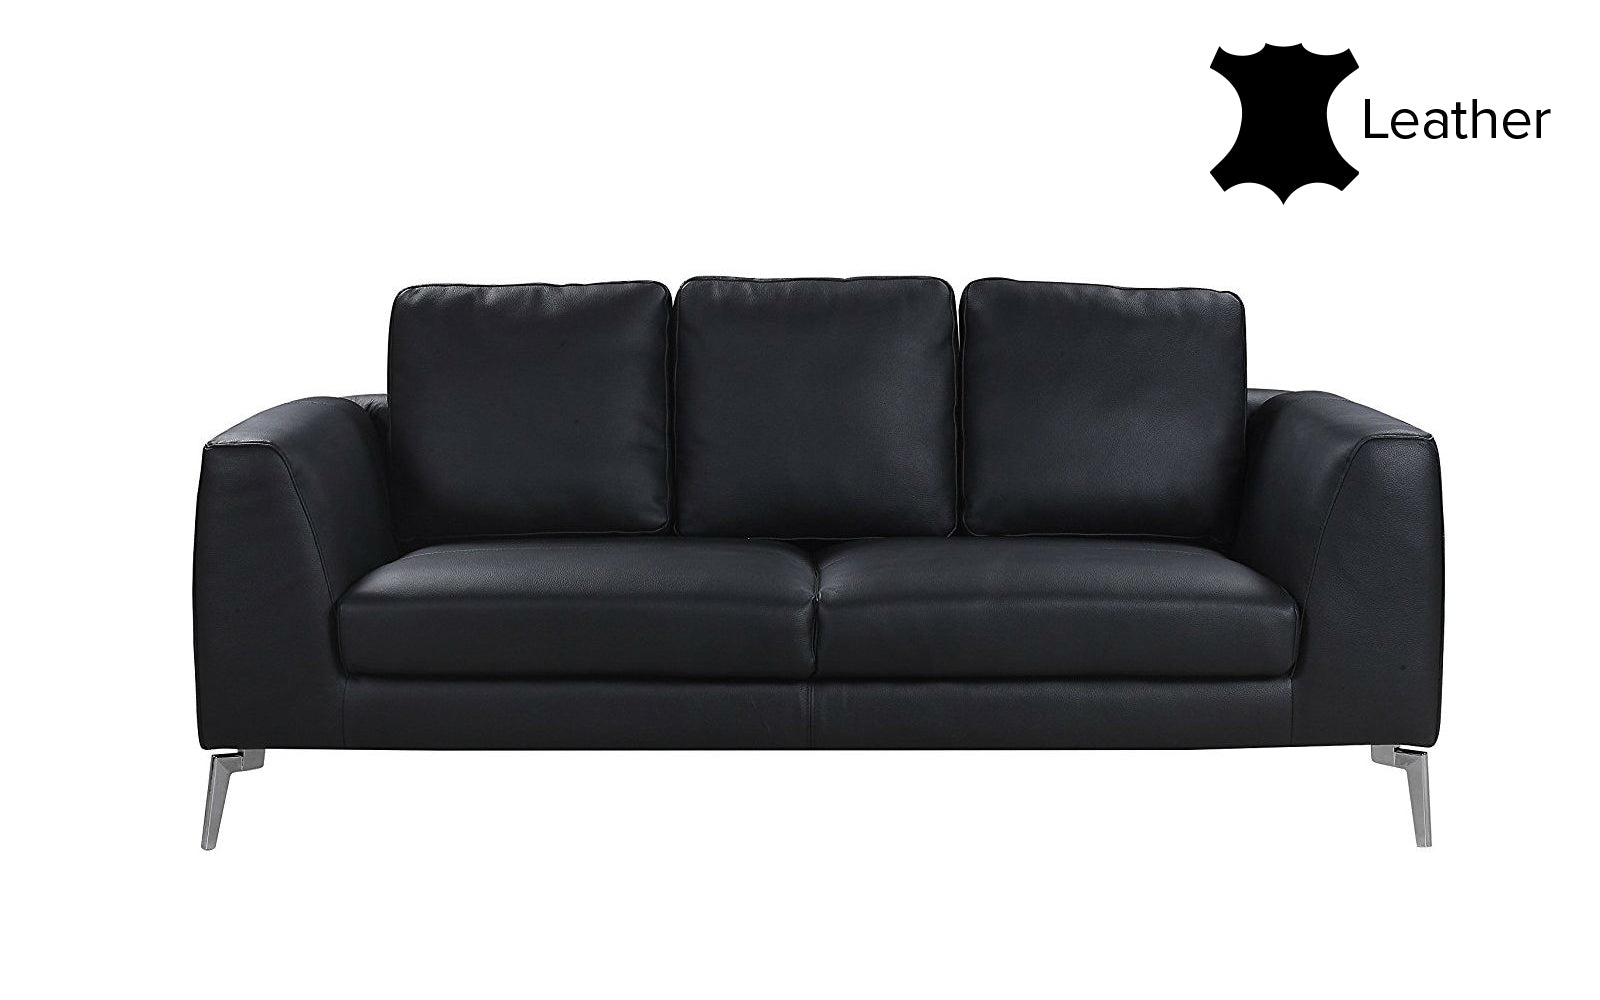 Santiago Mid Century Modern Leather Match Sofa | Sofamania.com